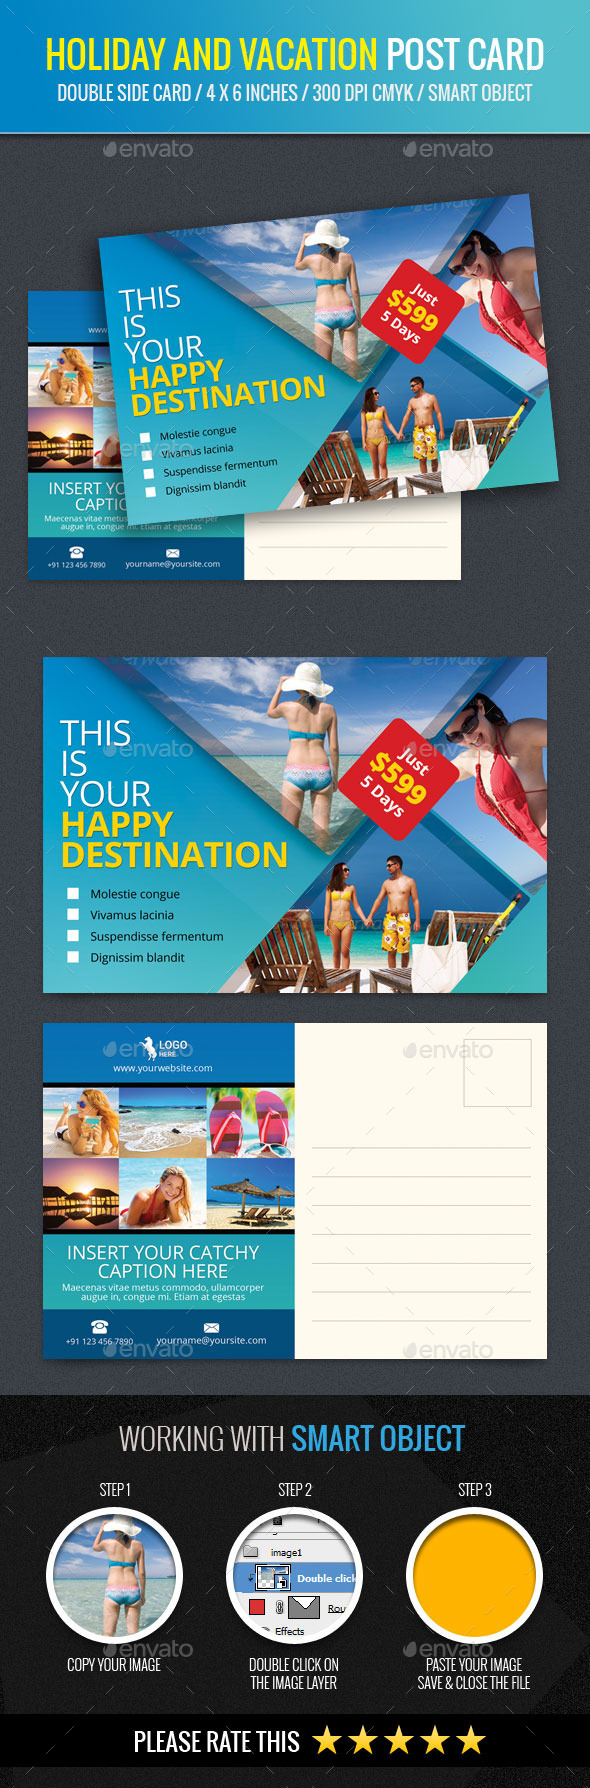 Holiday and Vacation Post Card Template - Cards & Invites Print Templates